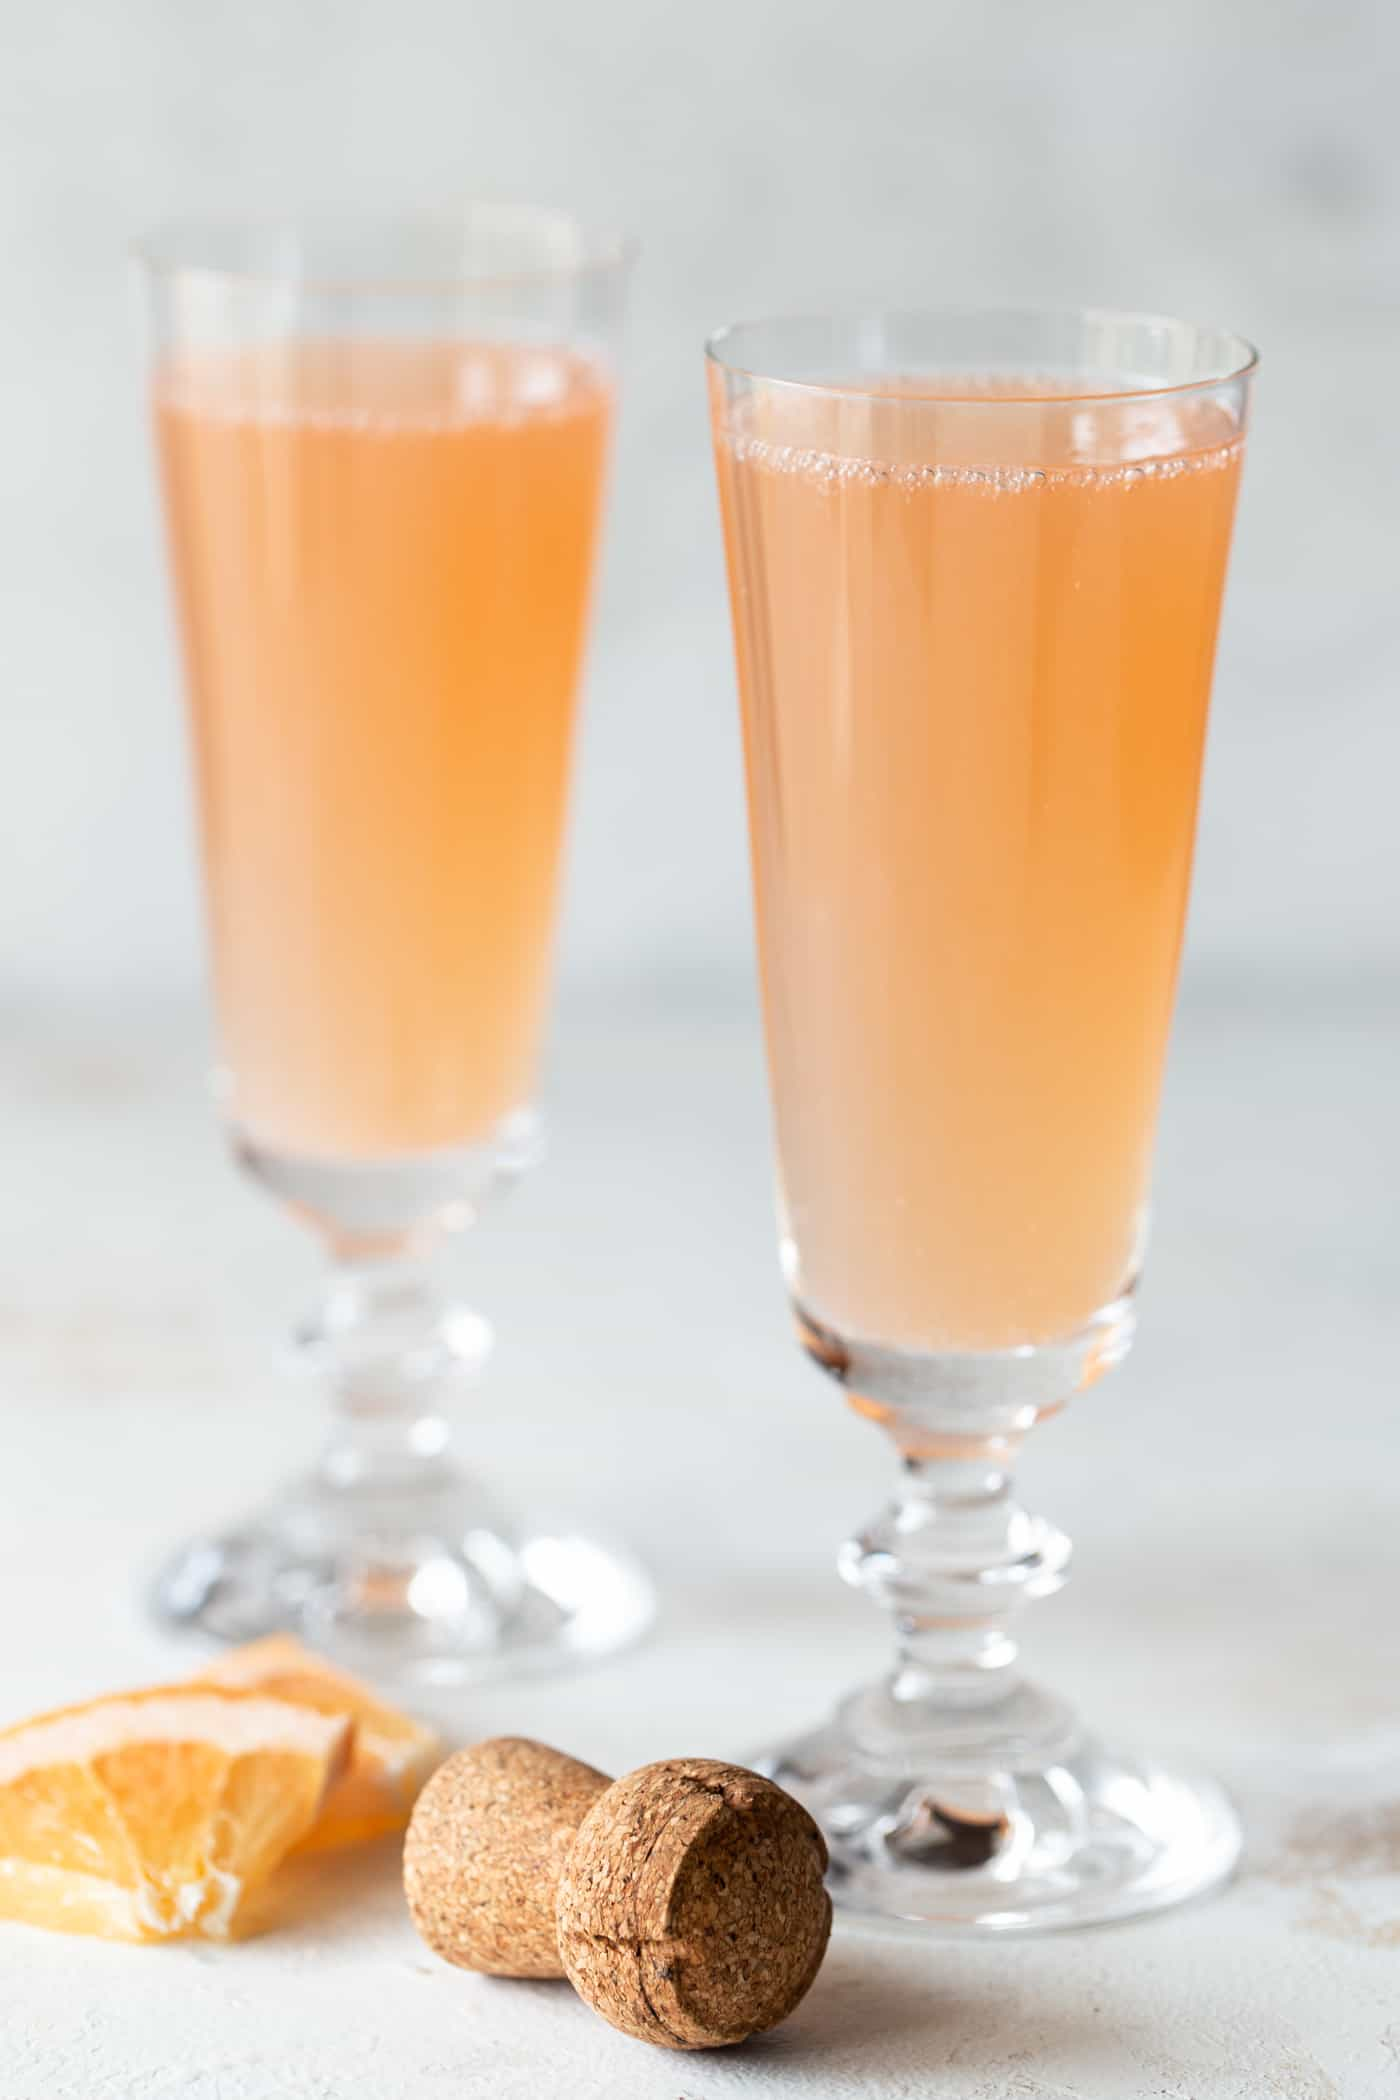 2 mimosas in champagne flutes with fresh grapefruit chunks for garnish.